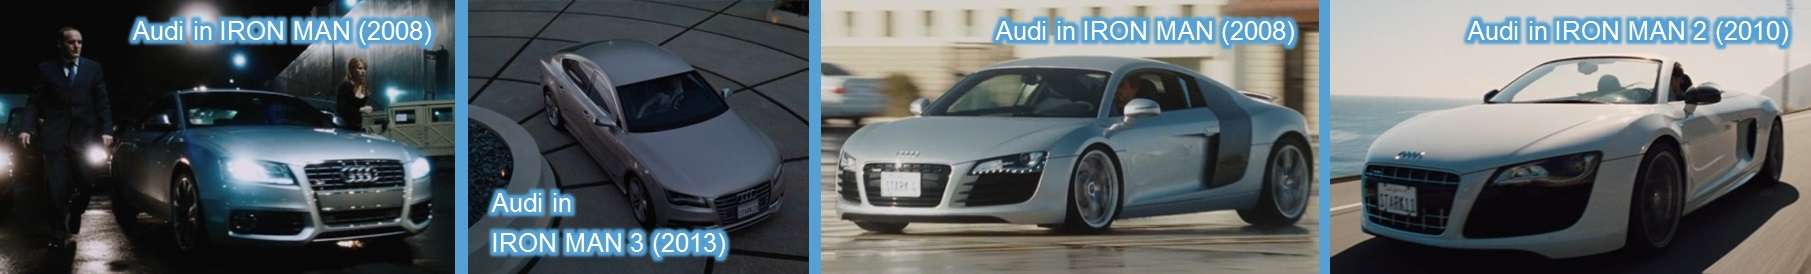 audi in iron man movies